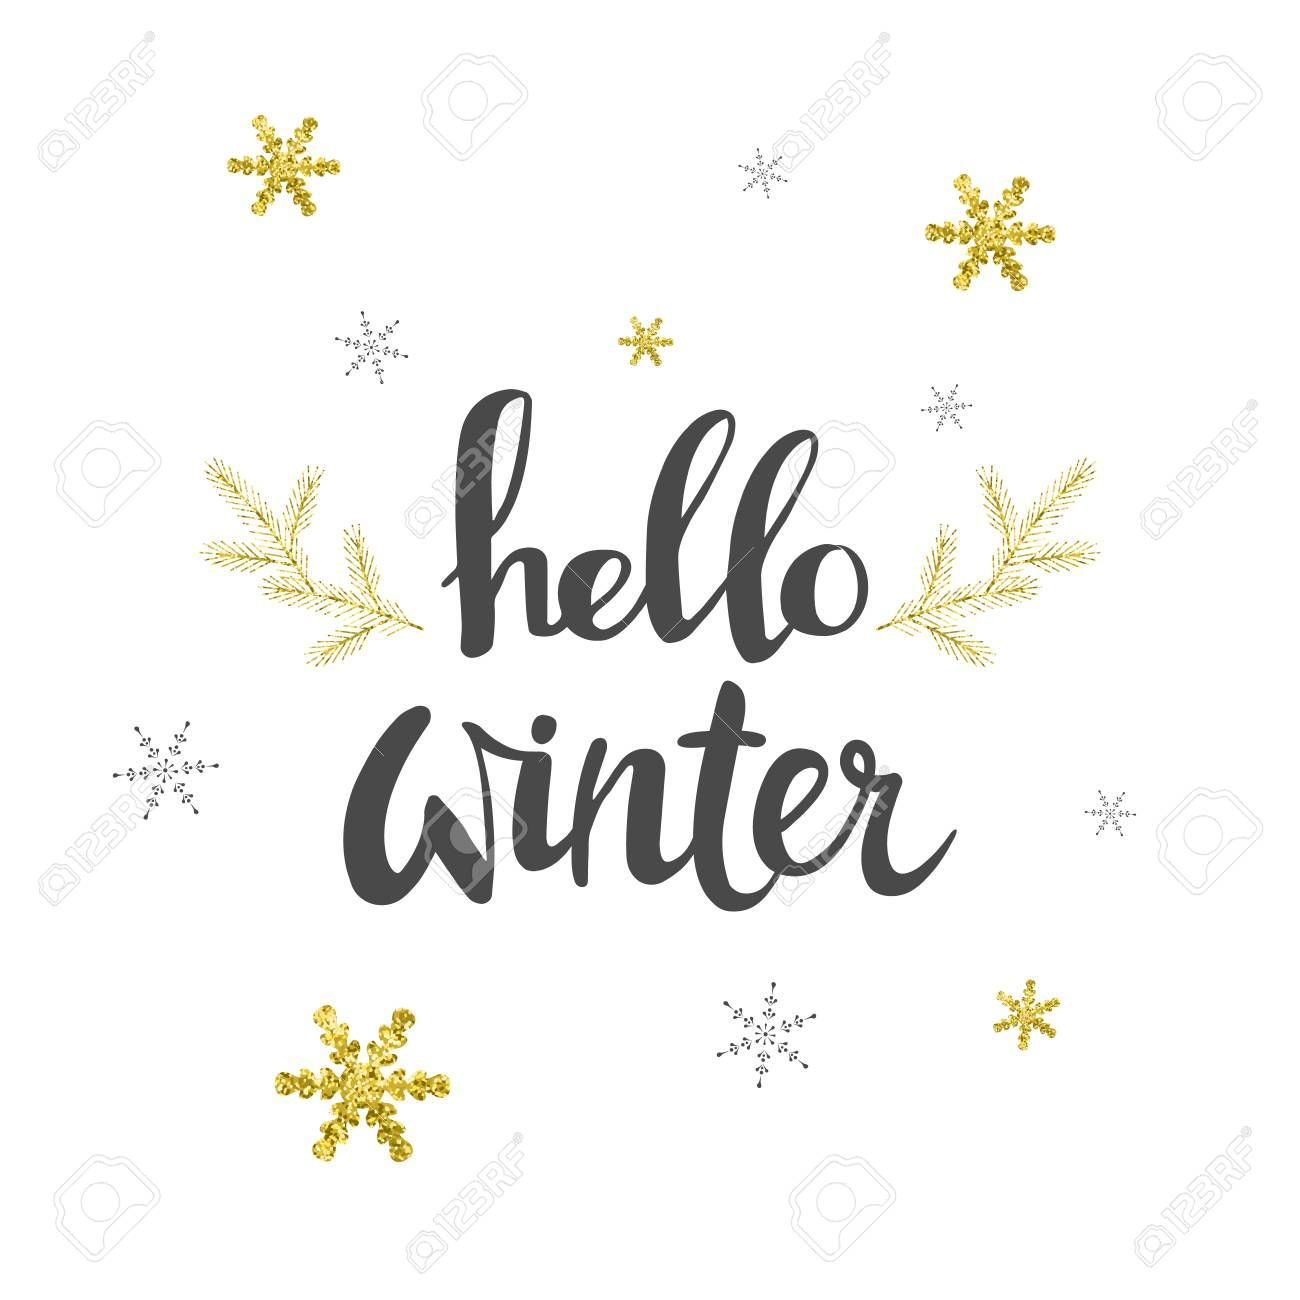 Hello Winter Greeting Card With Gold Snowflakes Design